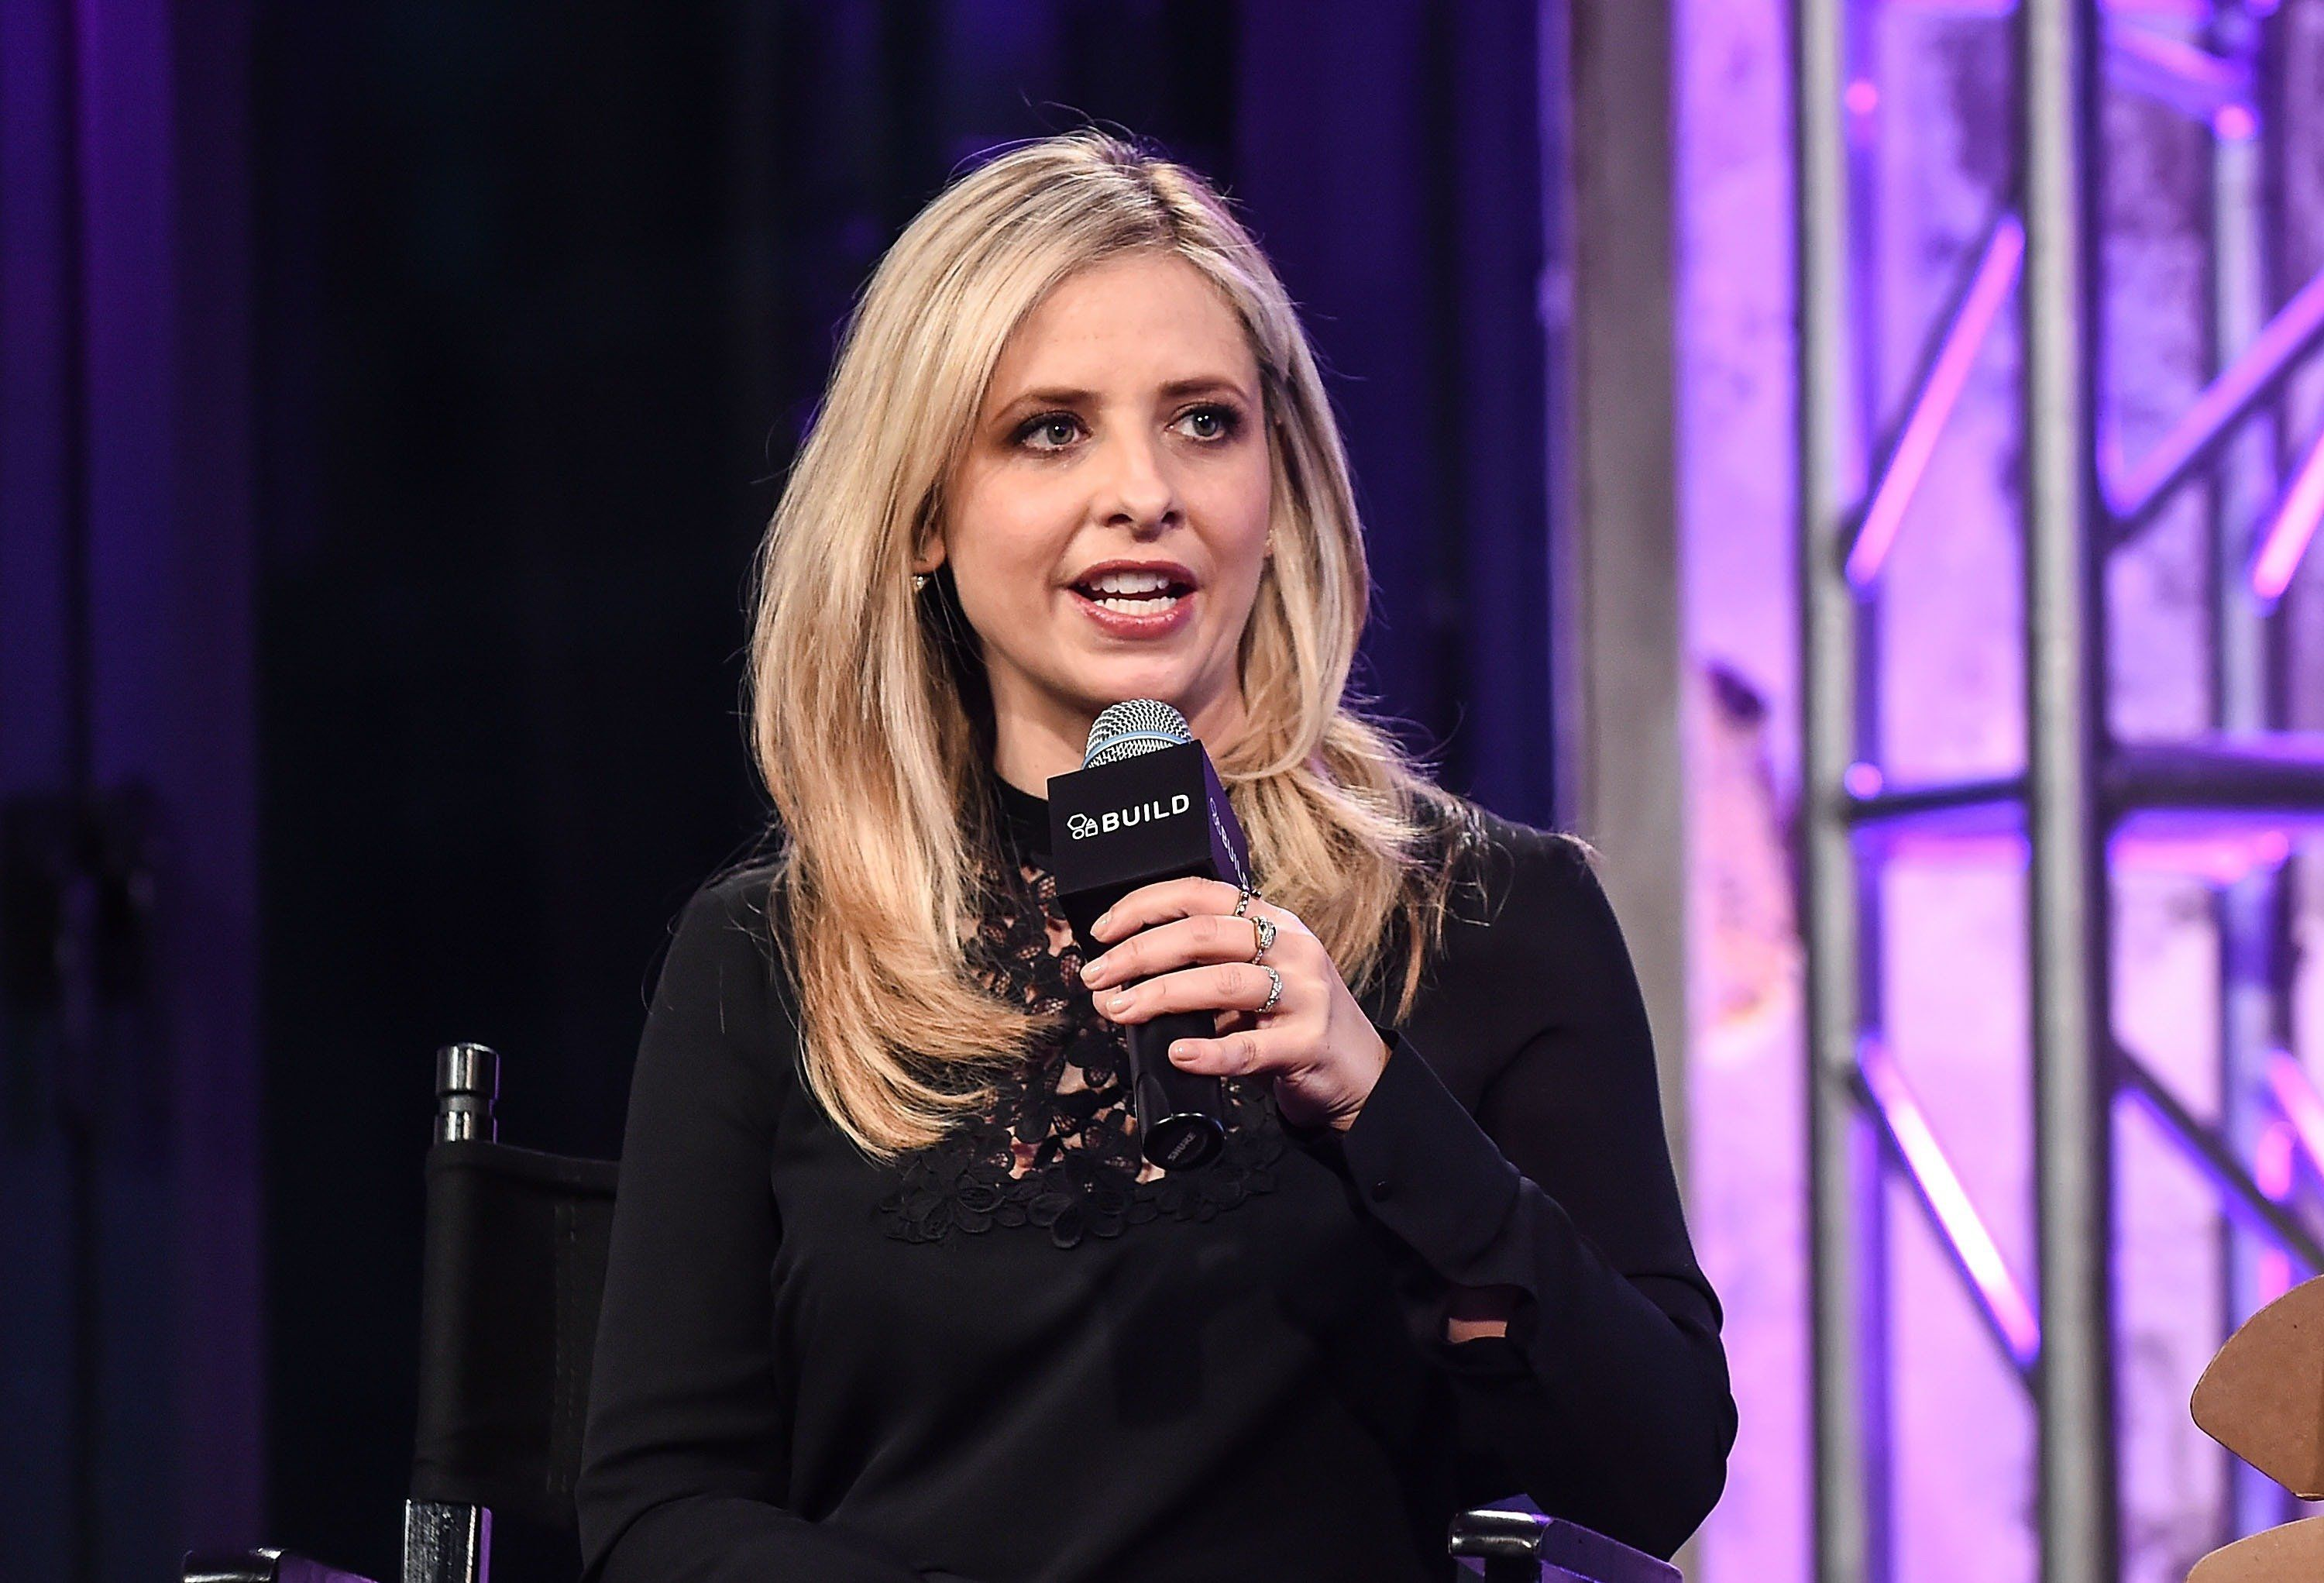 NEW YORK, NY - DECEMBER 17:  Actress Sarah Michelle Gellar attends AOL Build to discuss her new company 'Foodstirs' at AOL Studios on December 17, 2015 in New York City.  (Photo by Daniel Zuchnik/WireImage)